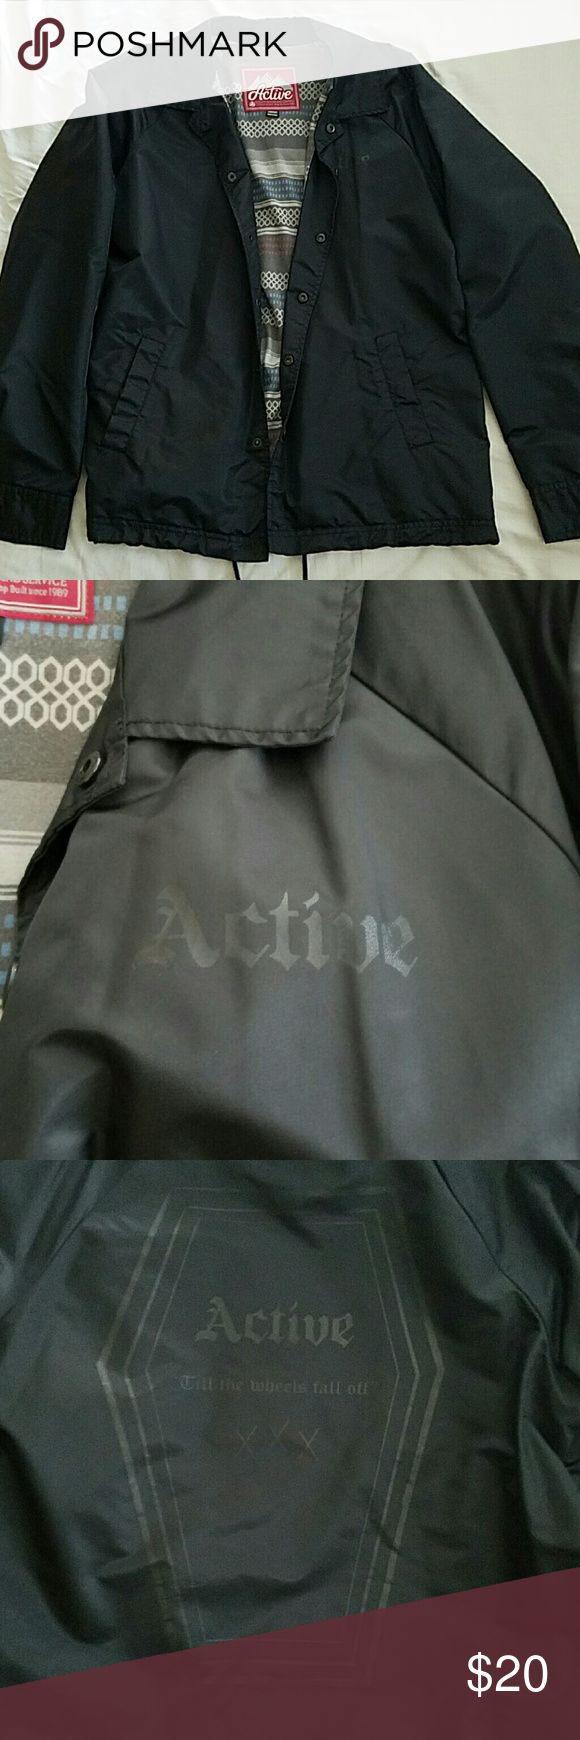 Active 'XXX' Jacket Comfy Active Brand jacket. Print on the back, two pockets on the front as well as draw strings. Make an offer! active ride shop Jackets & Coats